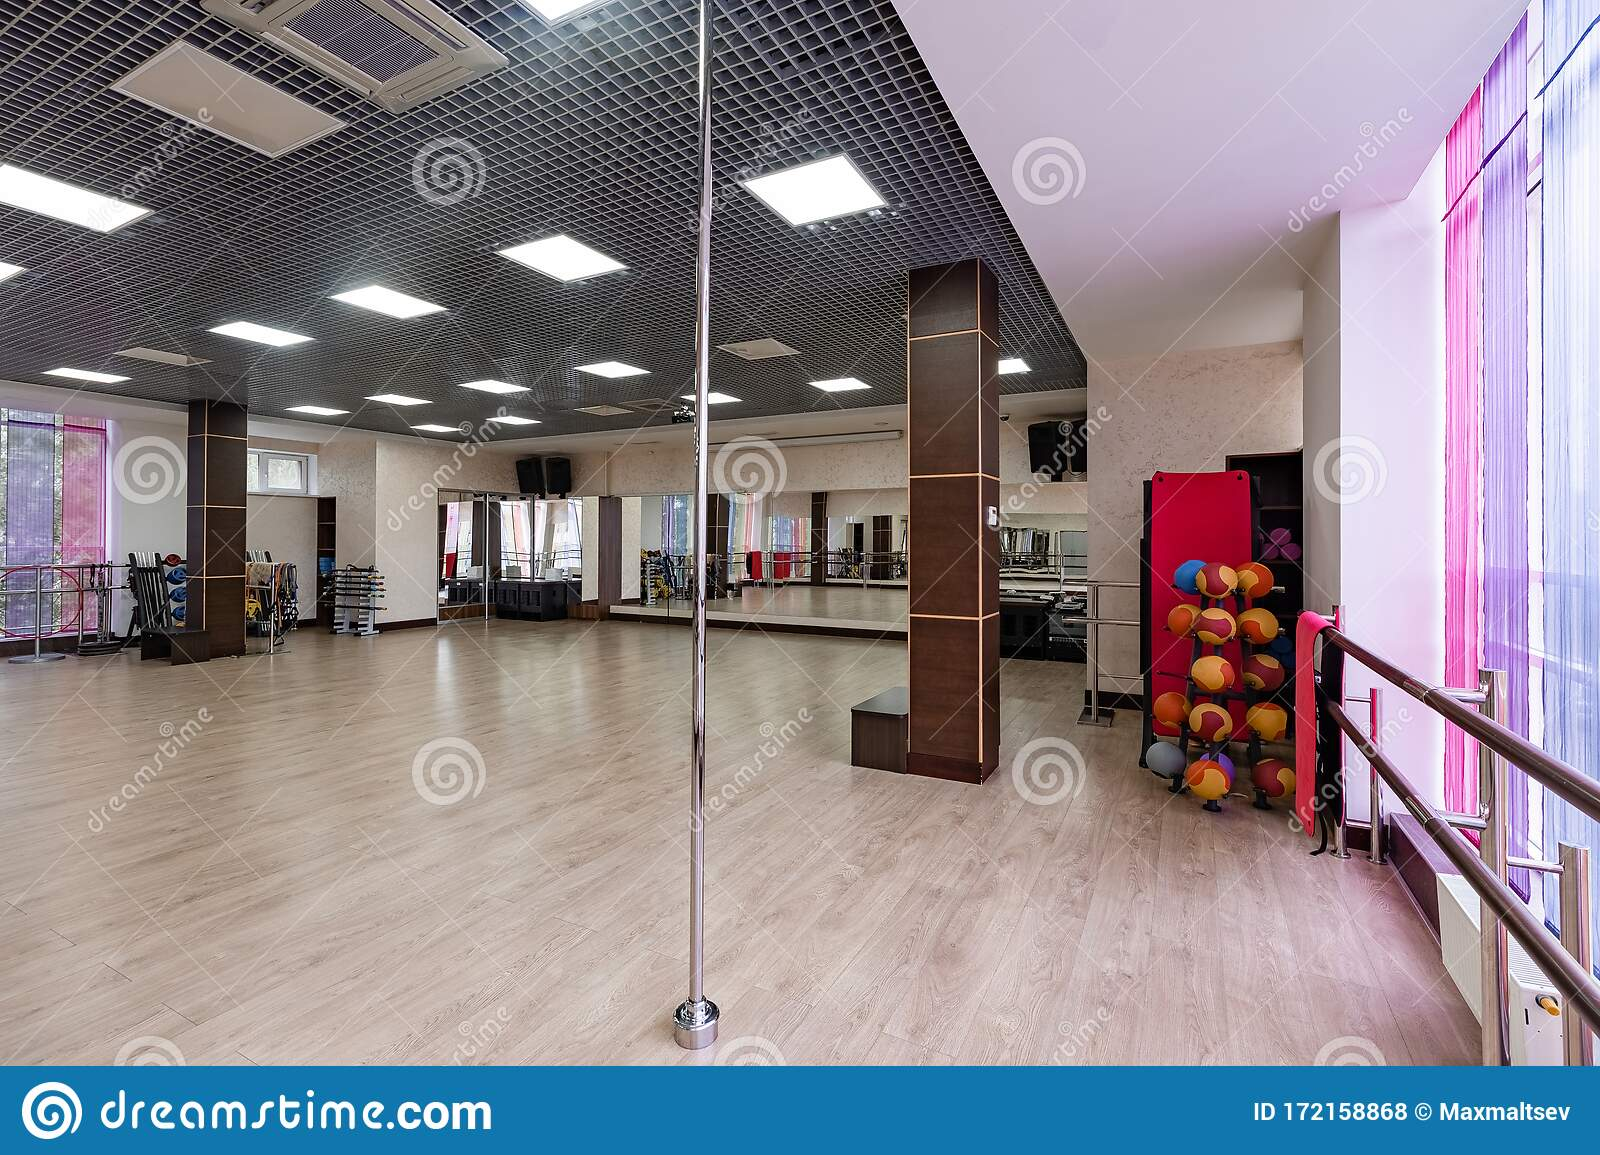 Group Fitness Room Modern Interior Design Fitness Workout Fitness Gym Background Gym Equipment Background Empty Stock Photo Image Of Equipment Floor 172158868